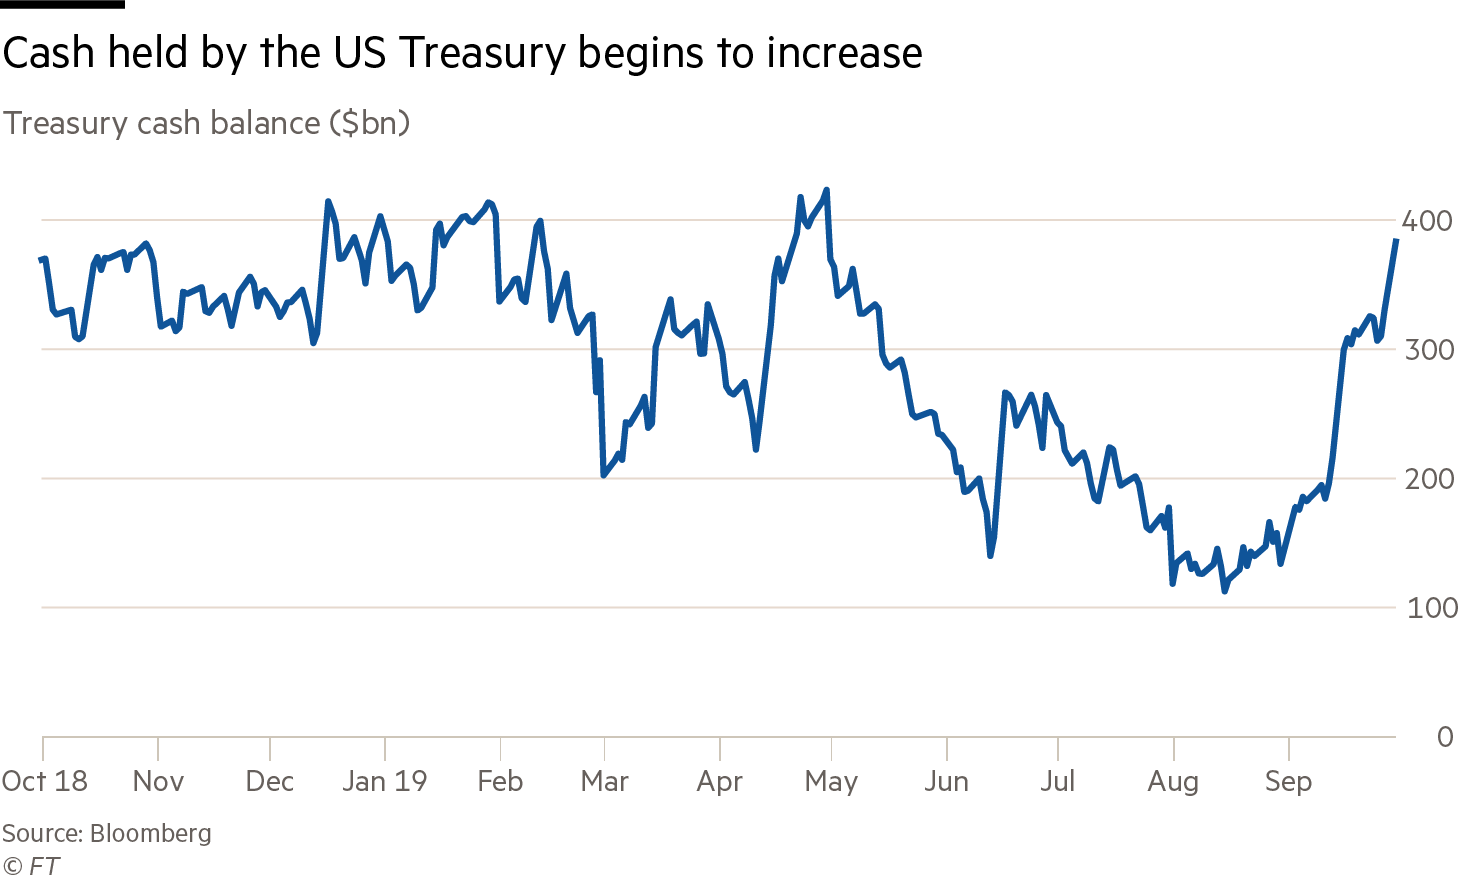 Line chart showing the US Treasury's bank balance and how this has started to increase again since September